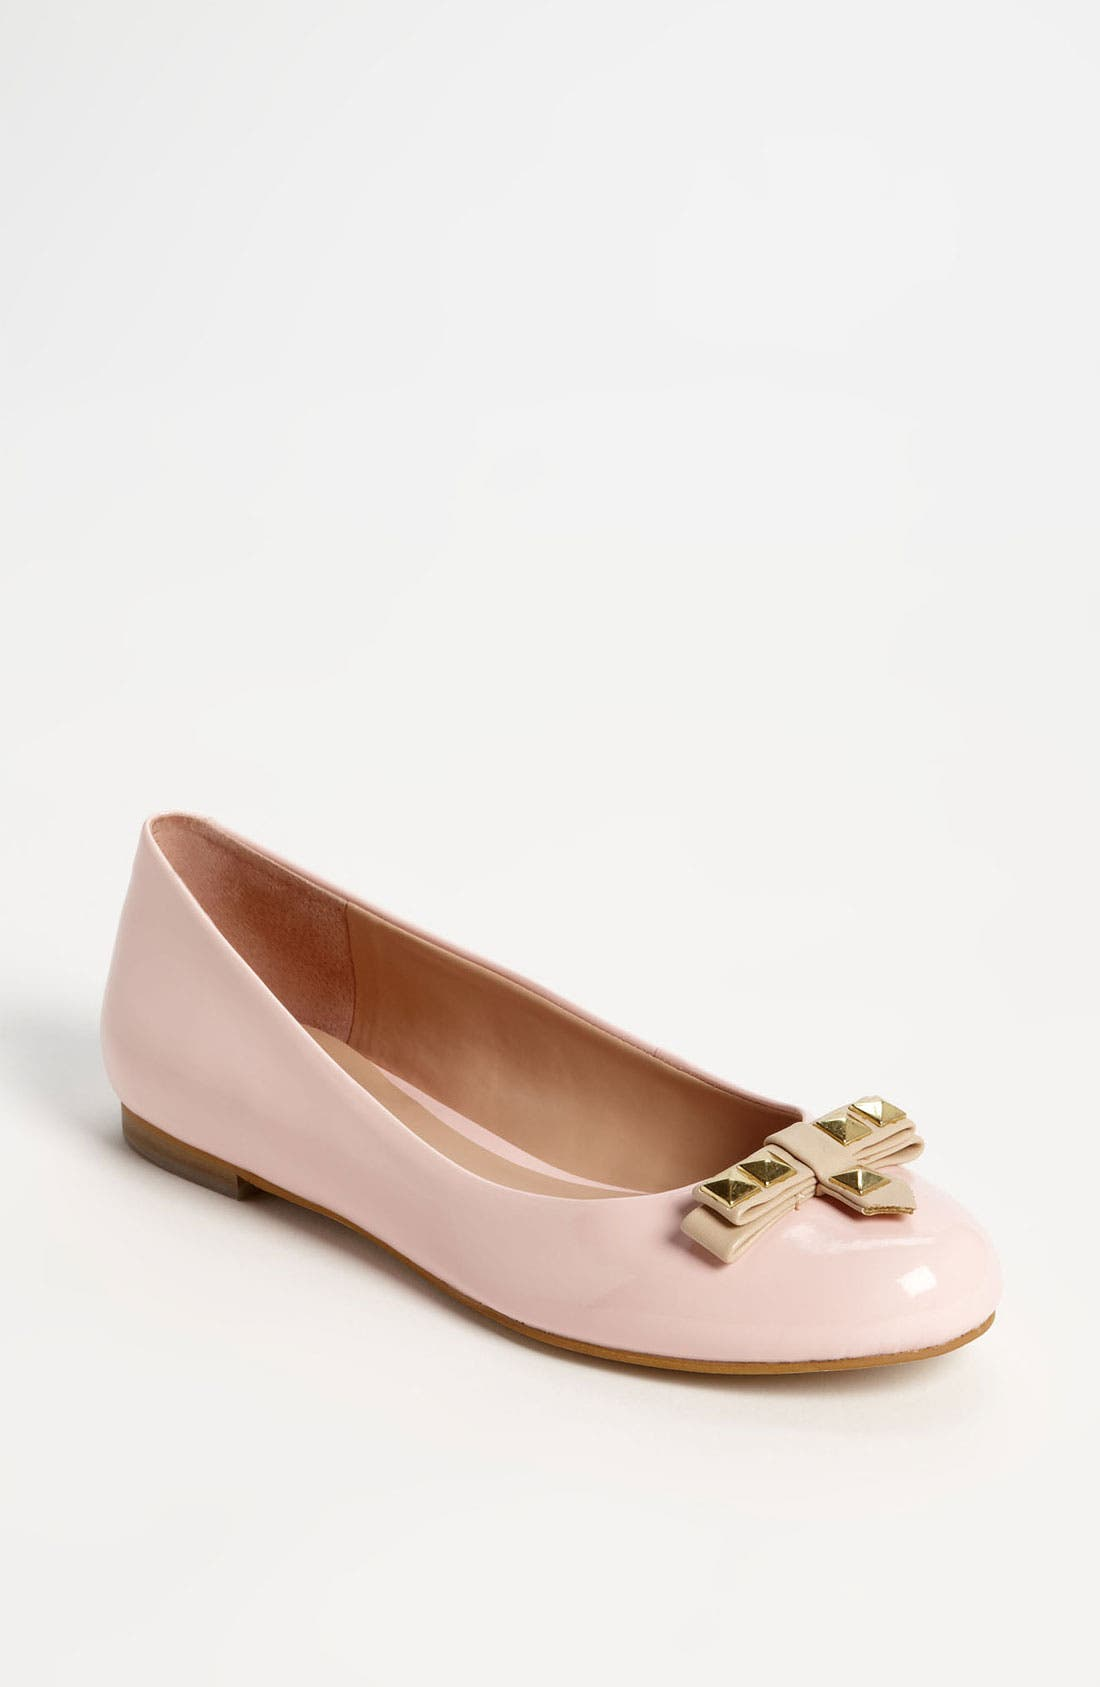 Alternate Image 1 Selected - Sole Society 'Belle' Flat